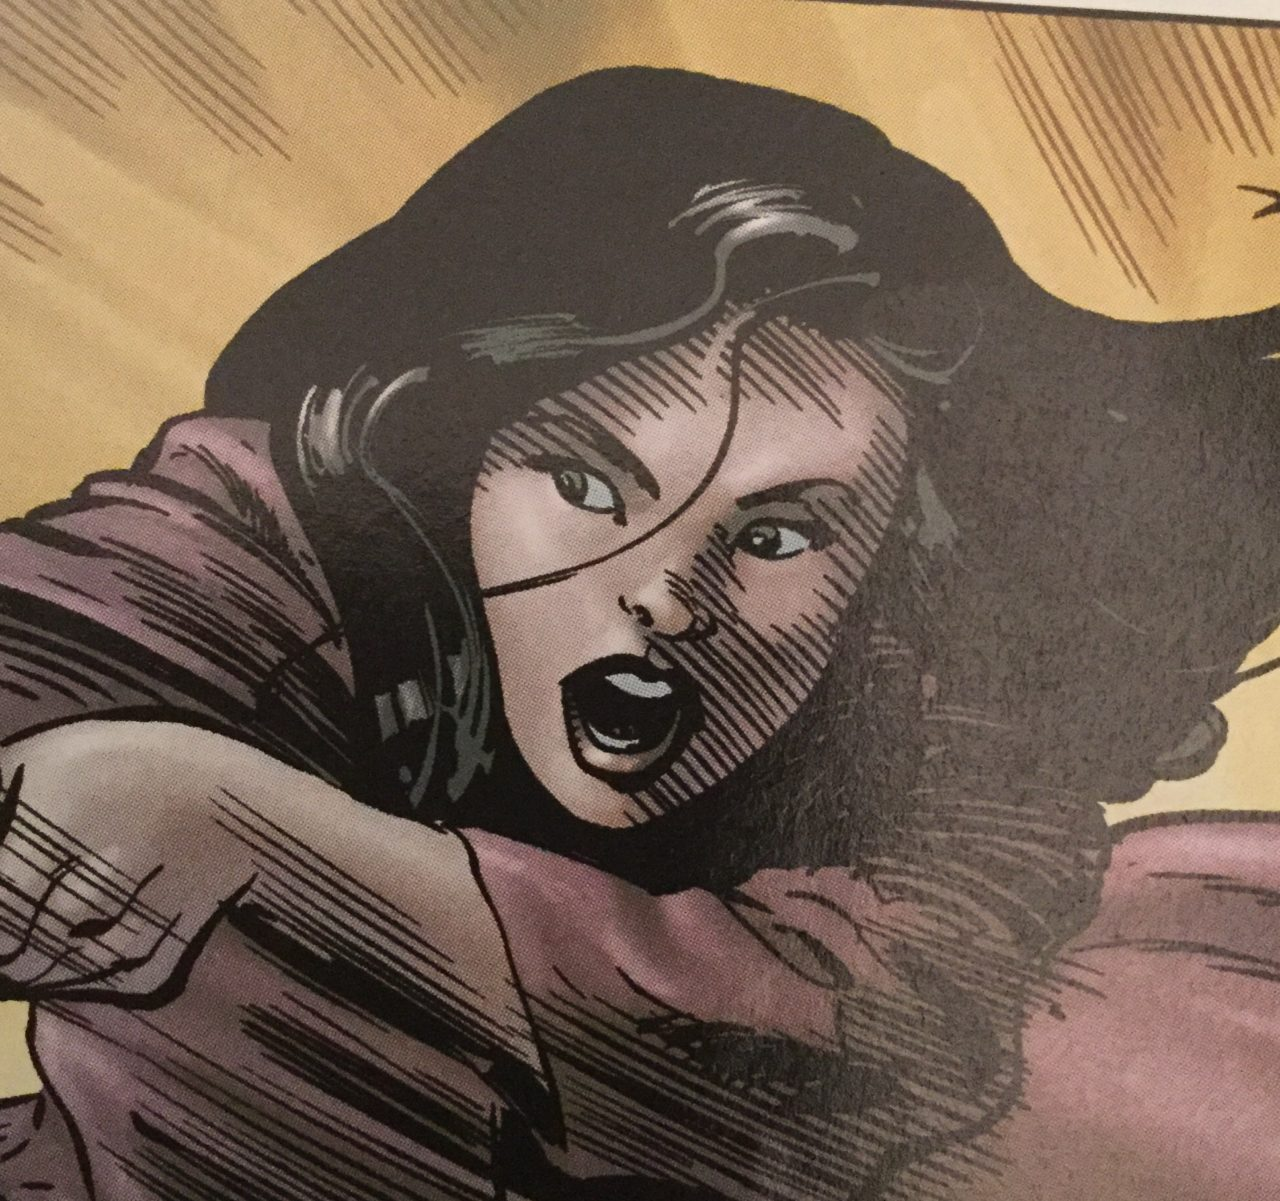 When Koike Wrote Logan: X-Men Unlimited #50's Missed Chances